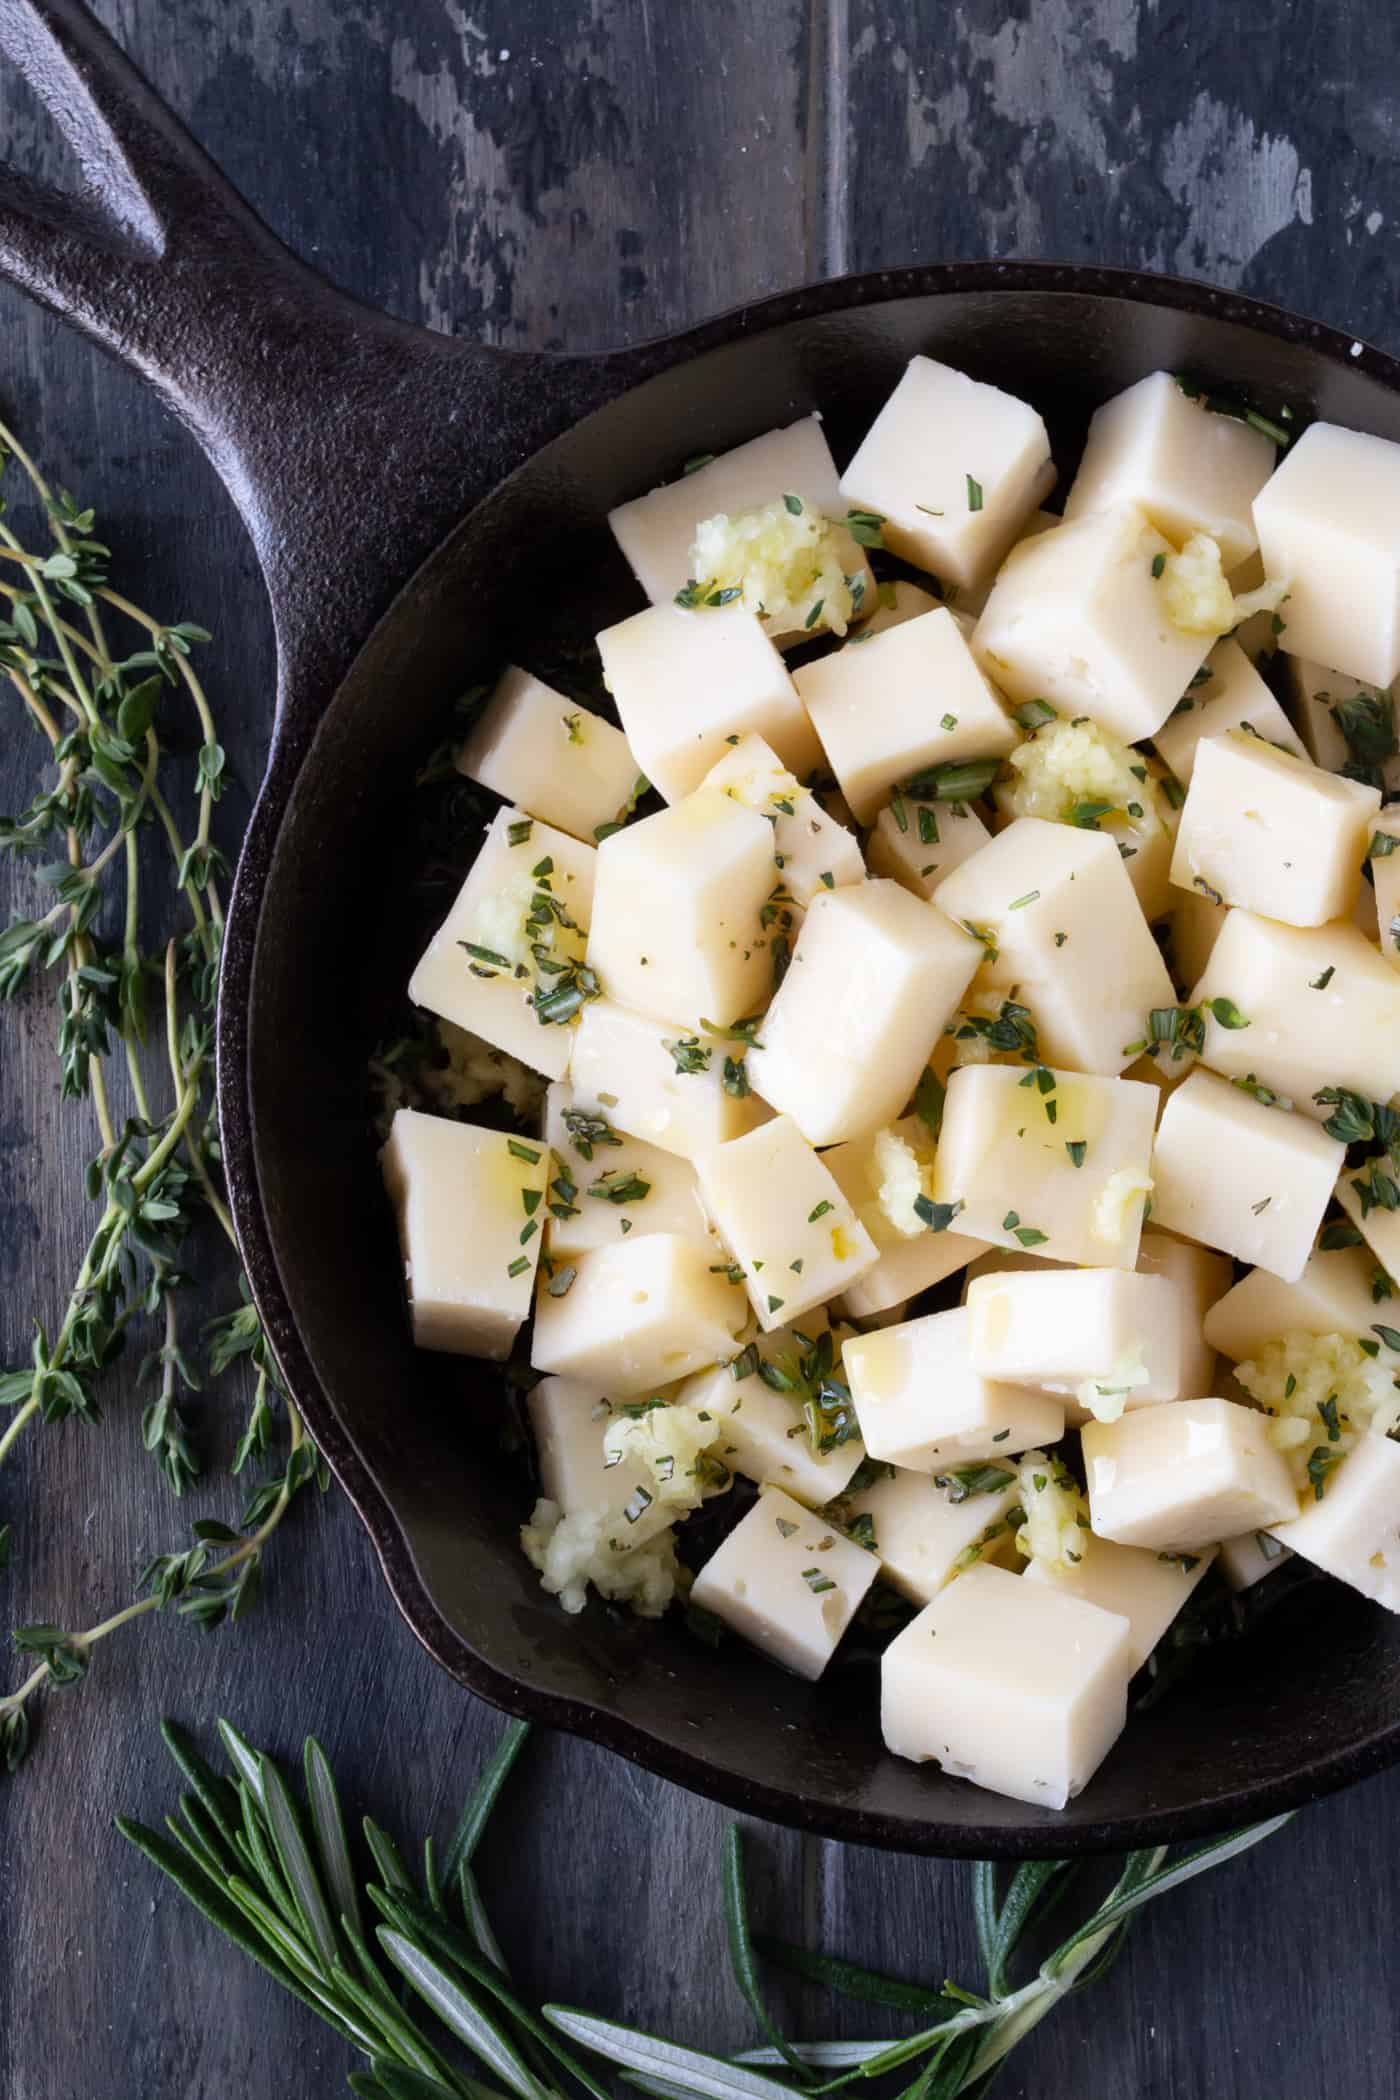 Cubed Fontina Cheese in a small black cast iron pan with fresh herbs, garlic and olive oil.